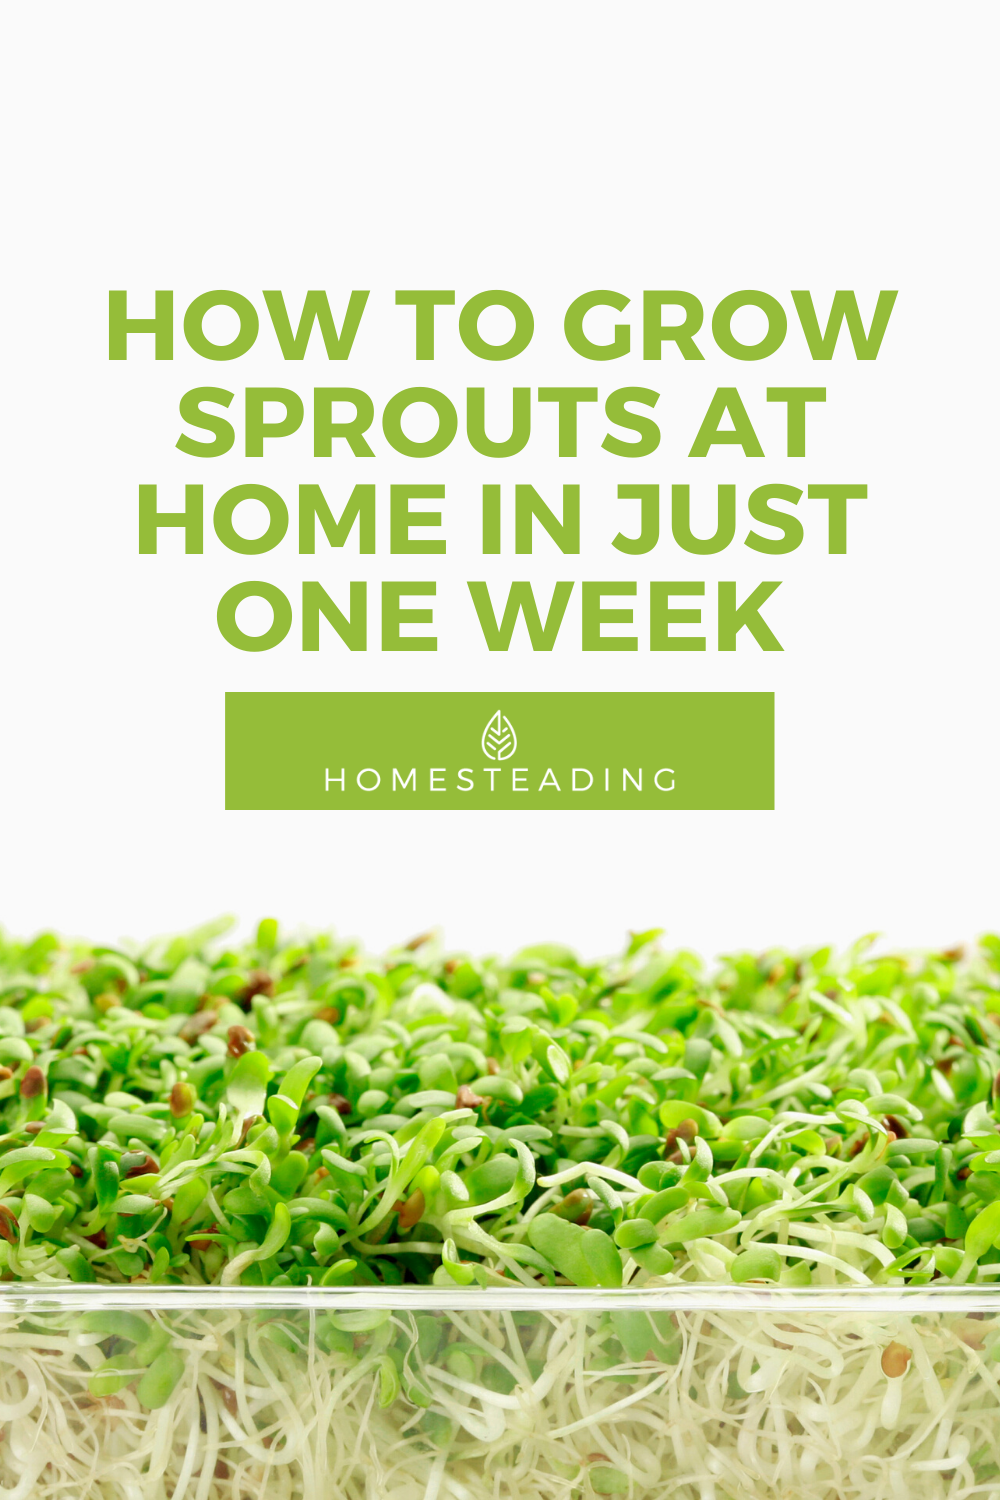 How To Grow Sprouts At Home In Just 1 Week Homesteading In 2021 Growing Sprouts Sprouts Growing